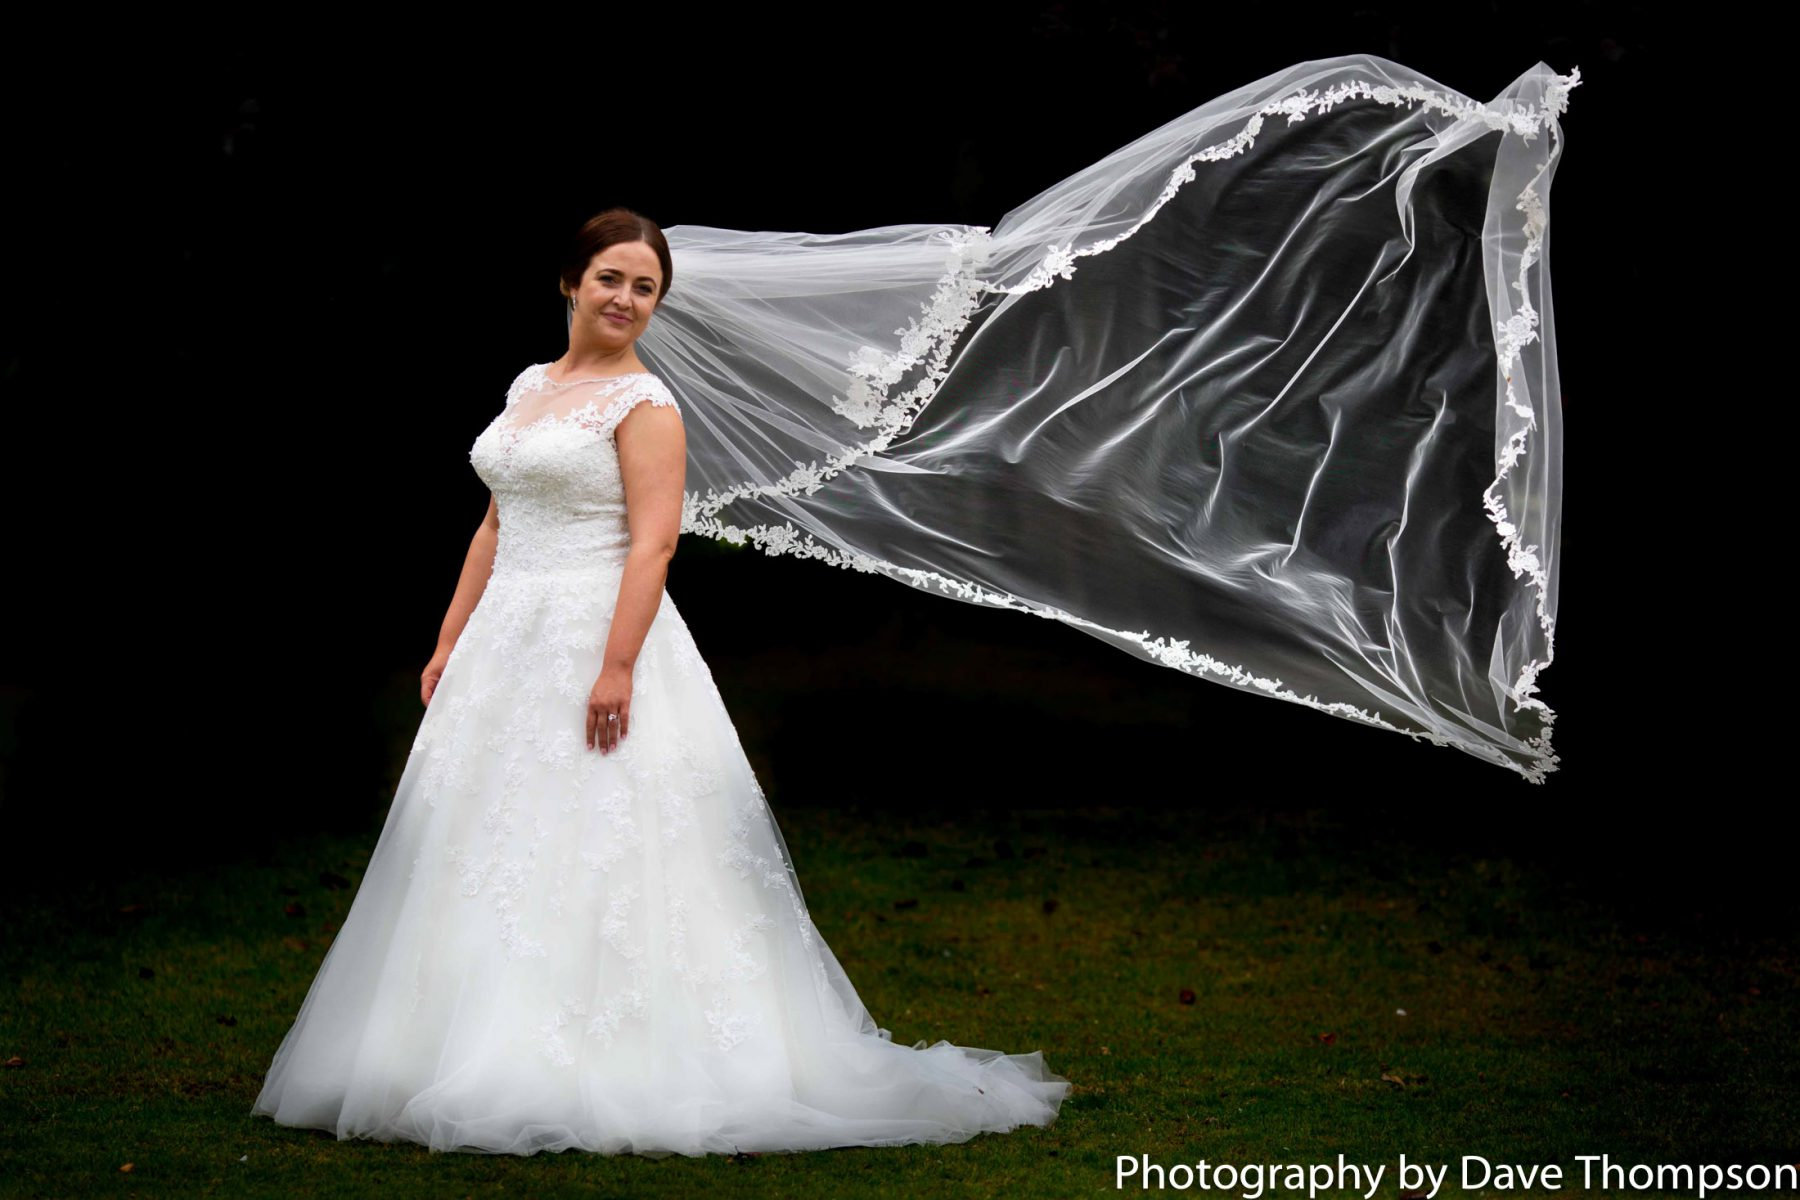 The bride in her dress as the veil flies behind